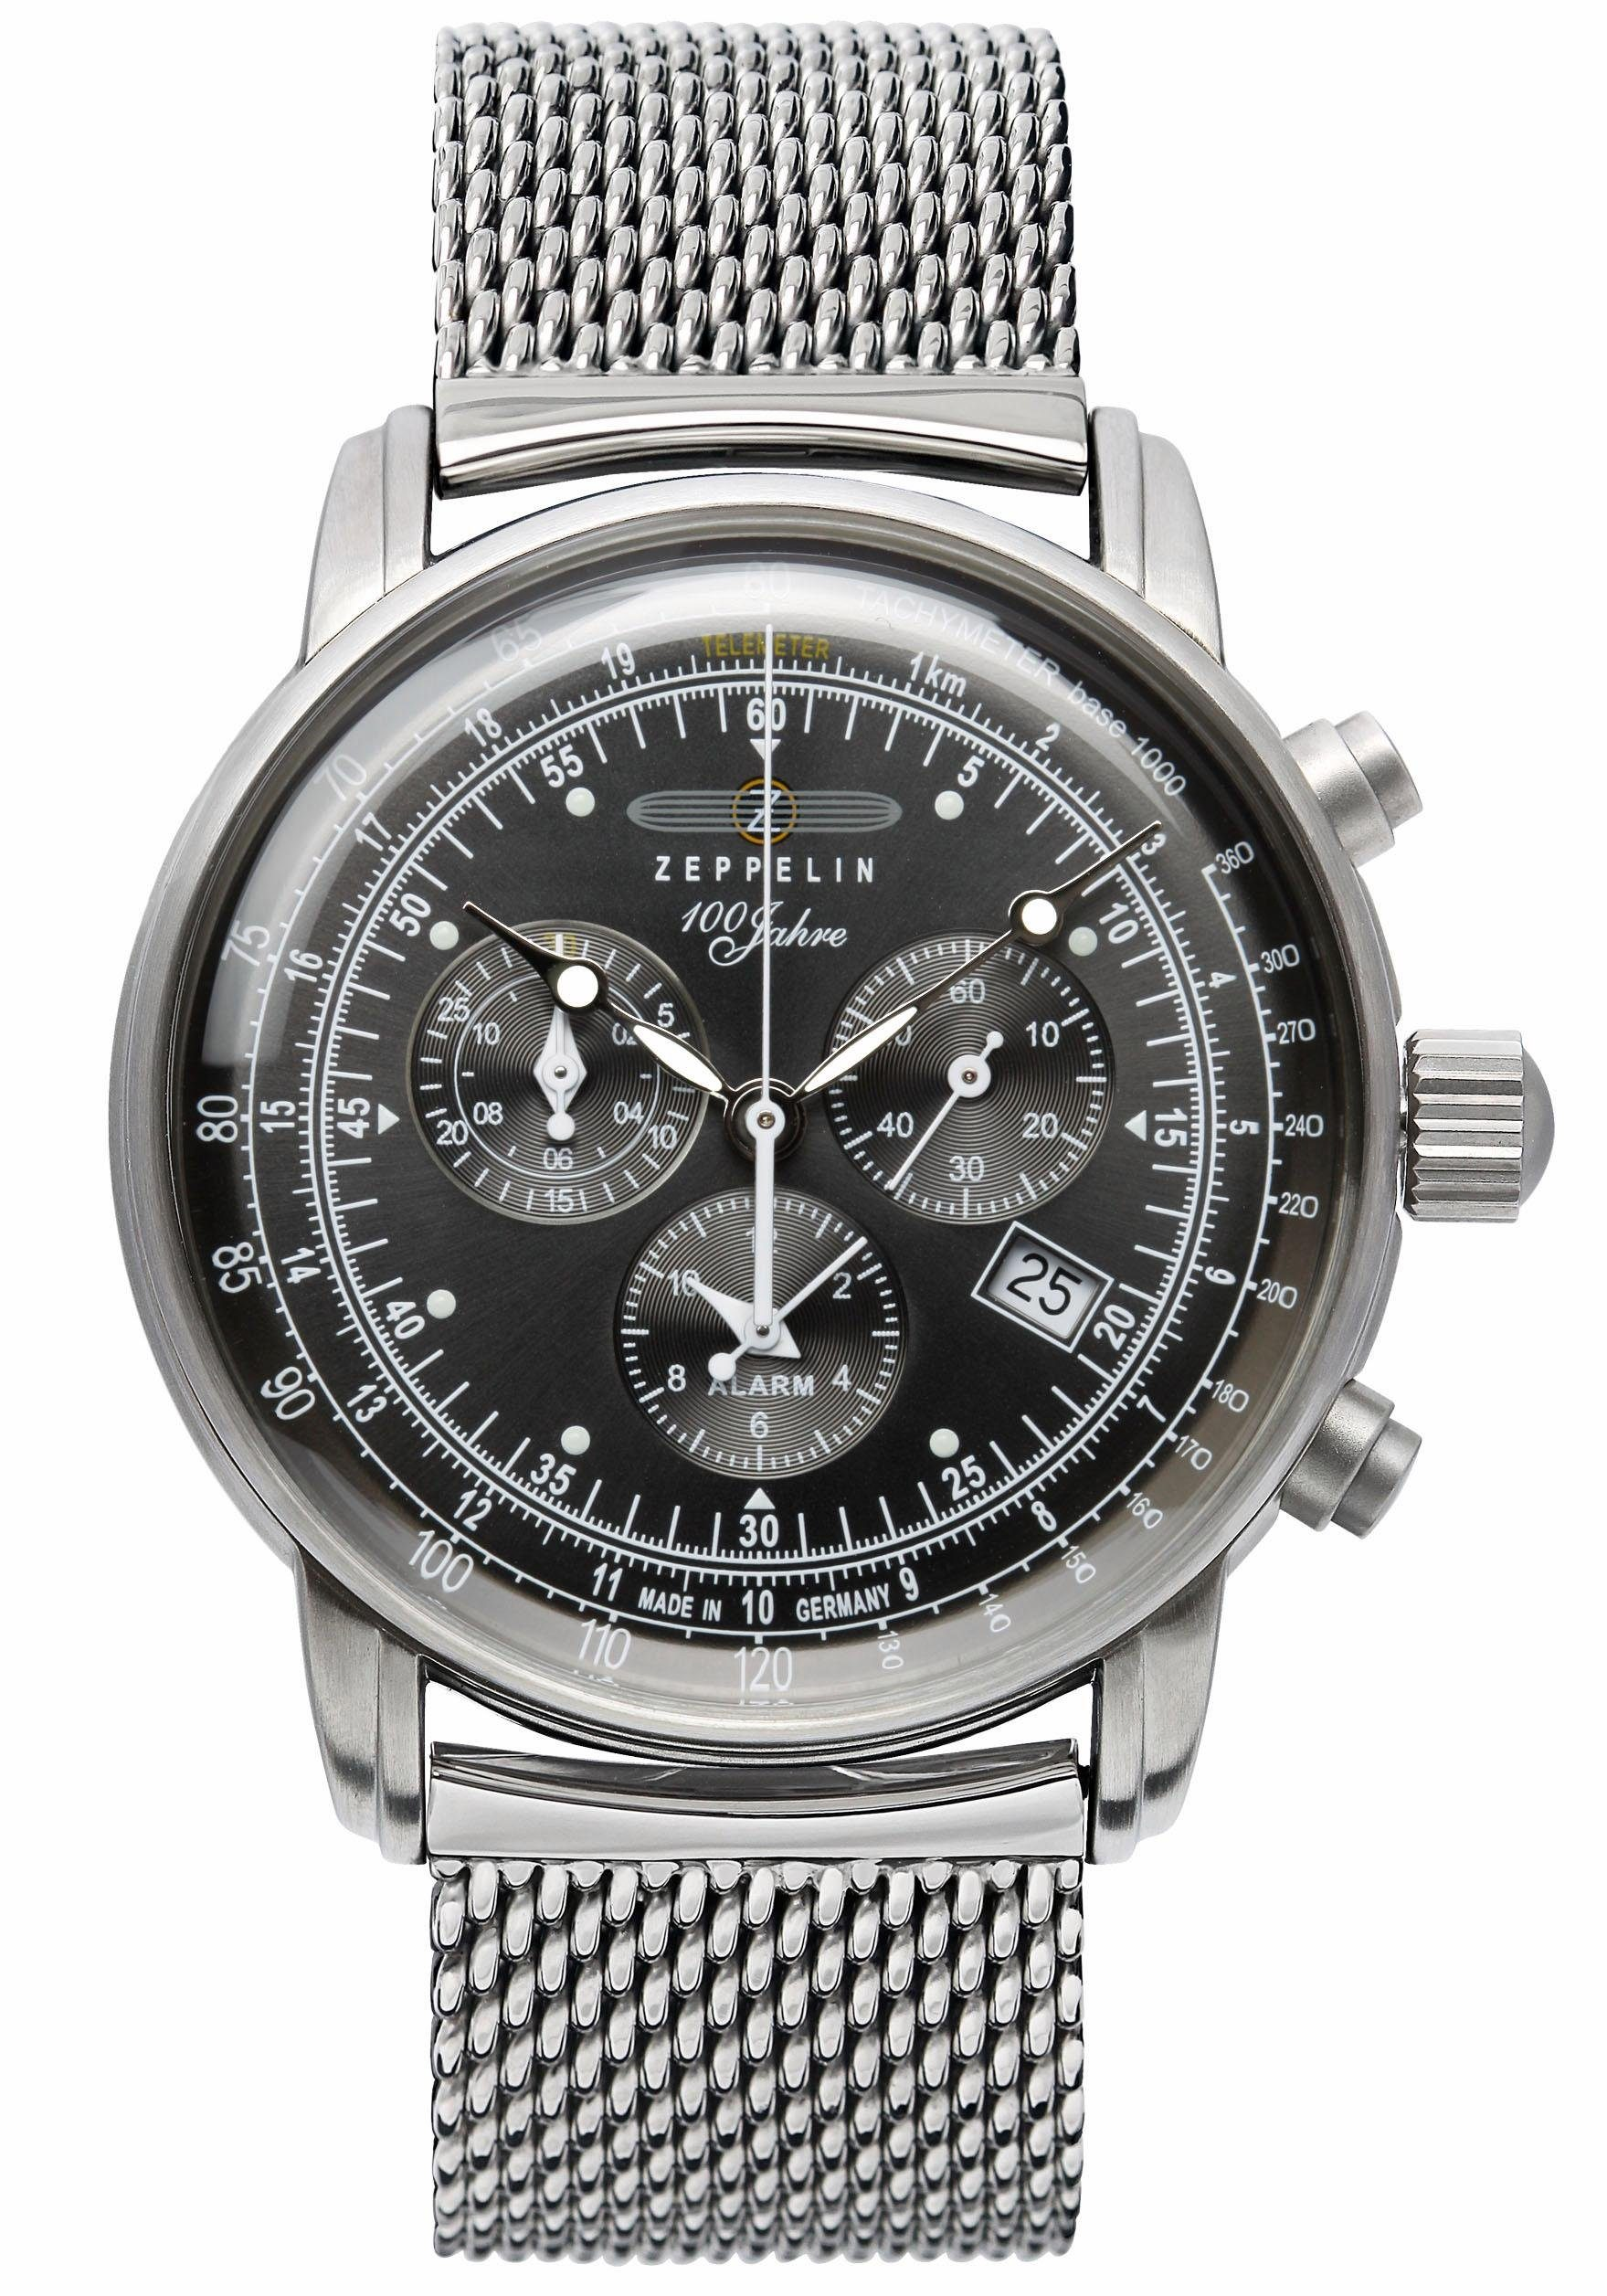 ZEPPELIN Chronograph »100 Jahre Zeppelin, 7680M-2« Made in Germany